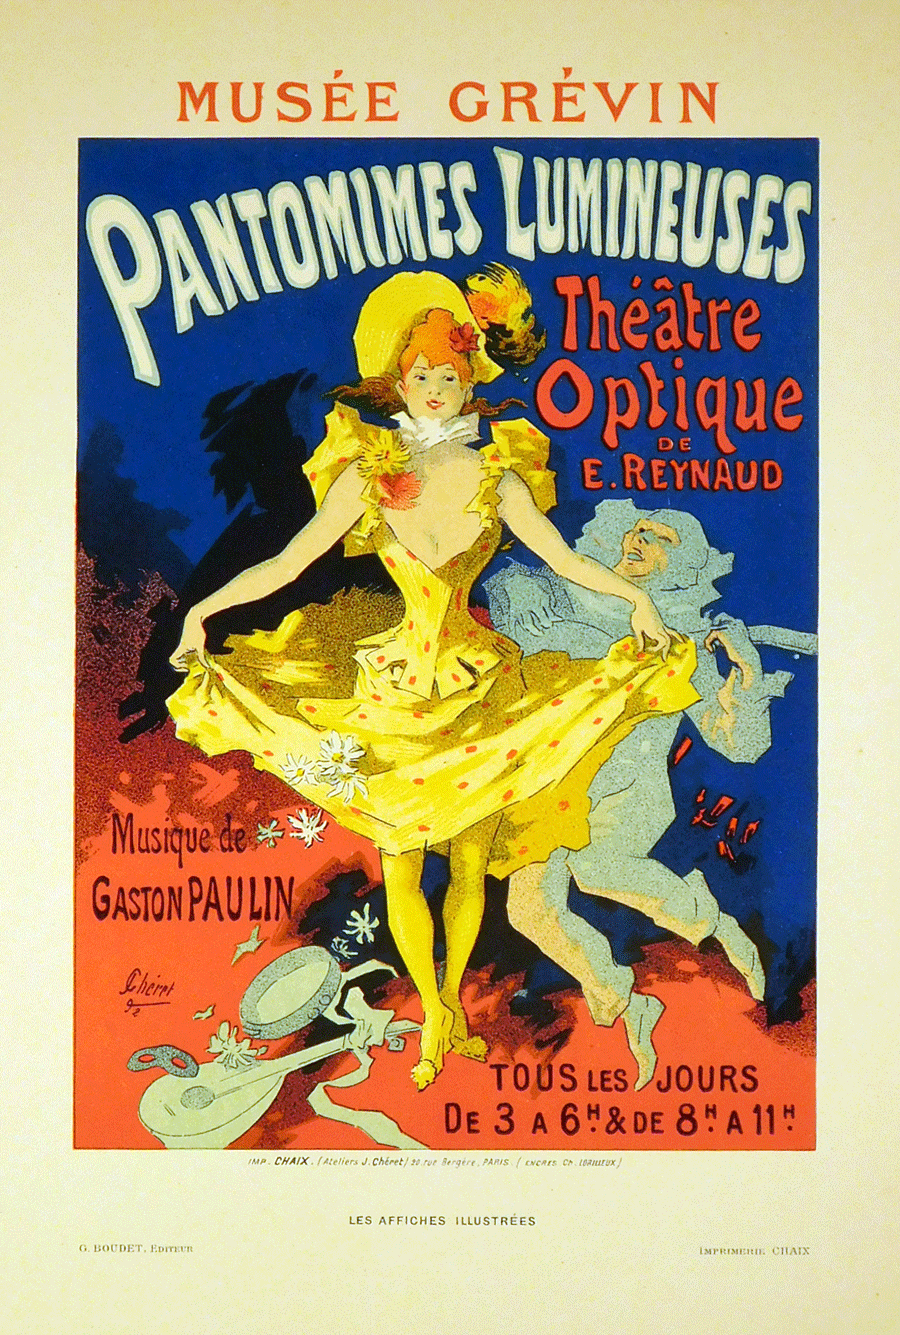 Pantomimes Lumineuses Color Lithograph by Jules Cheret